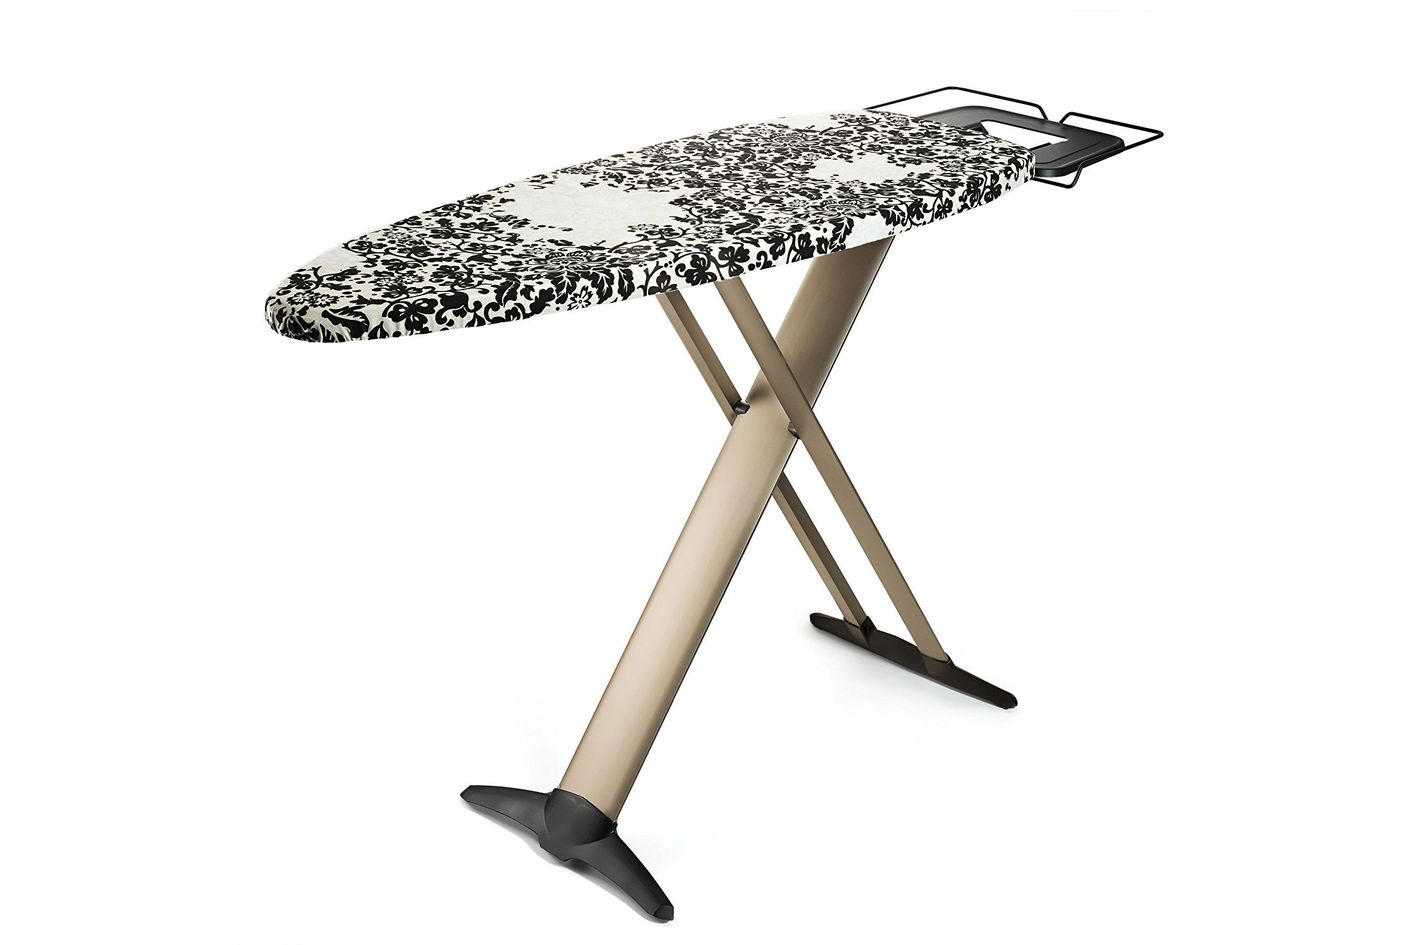 Bartnelli Pro Luxery Extra Wide ironing board